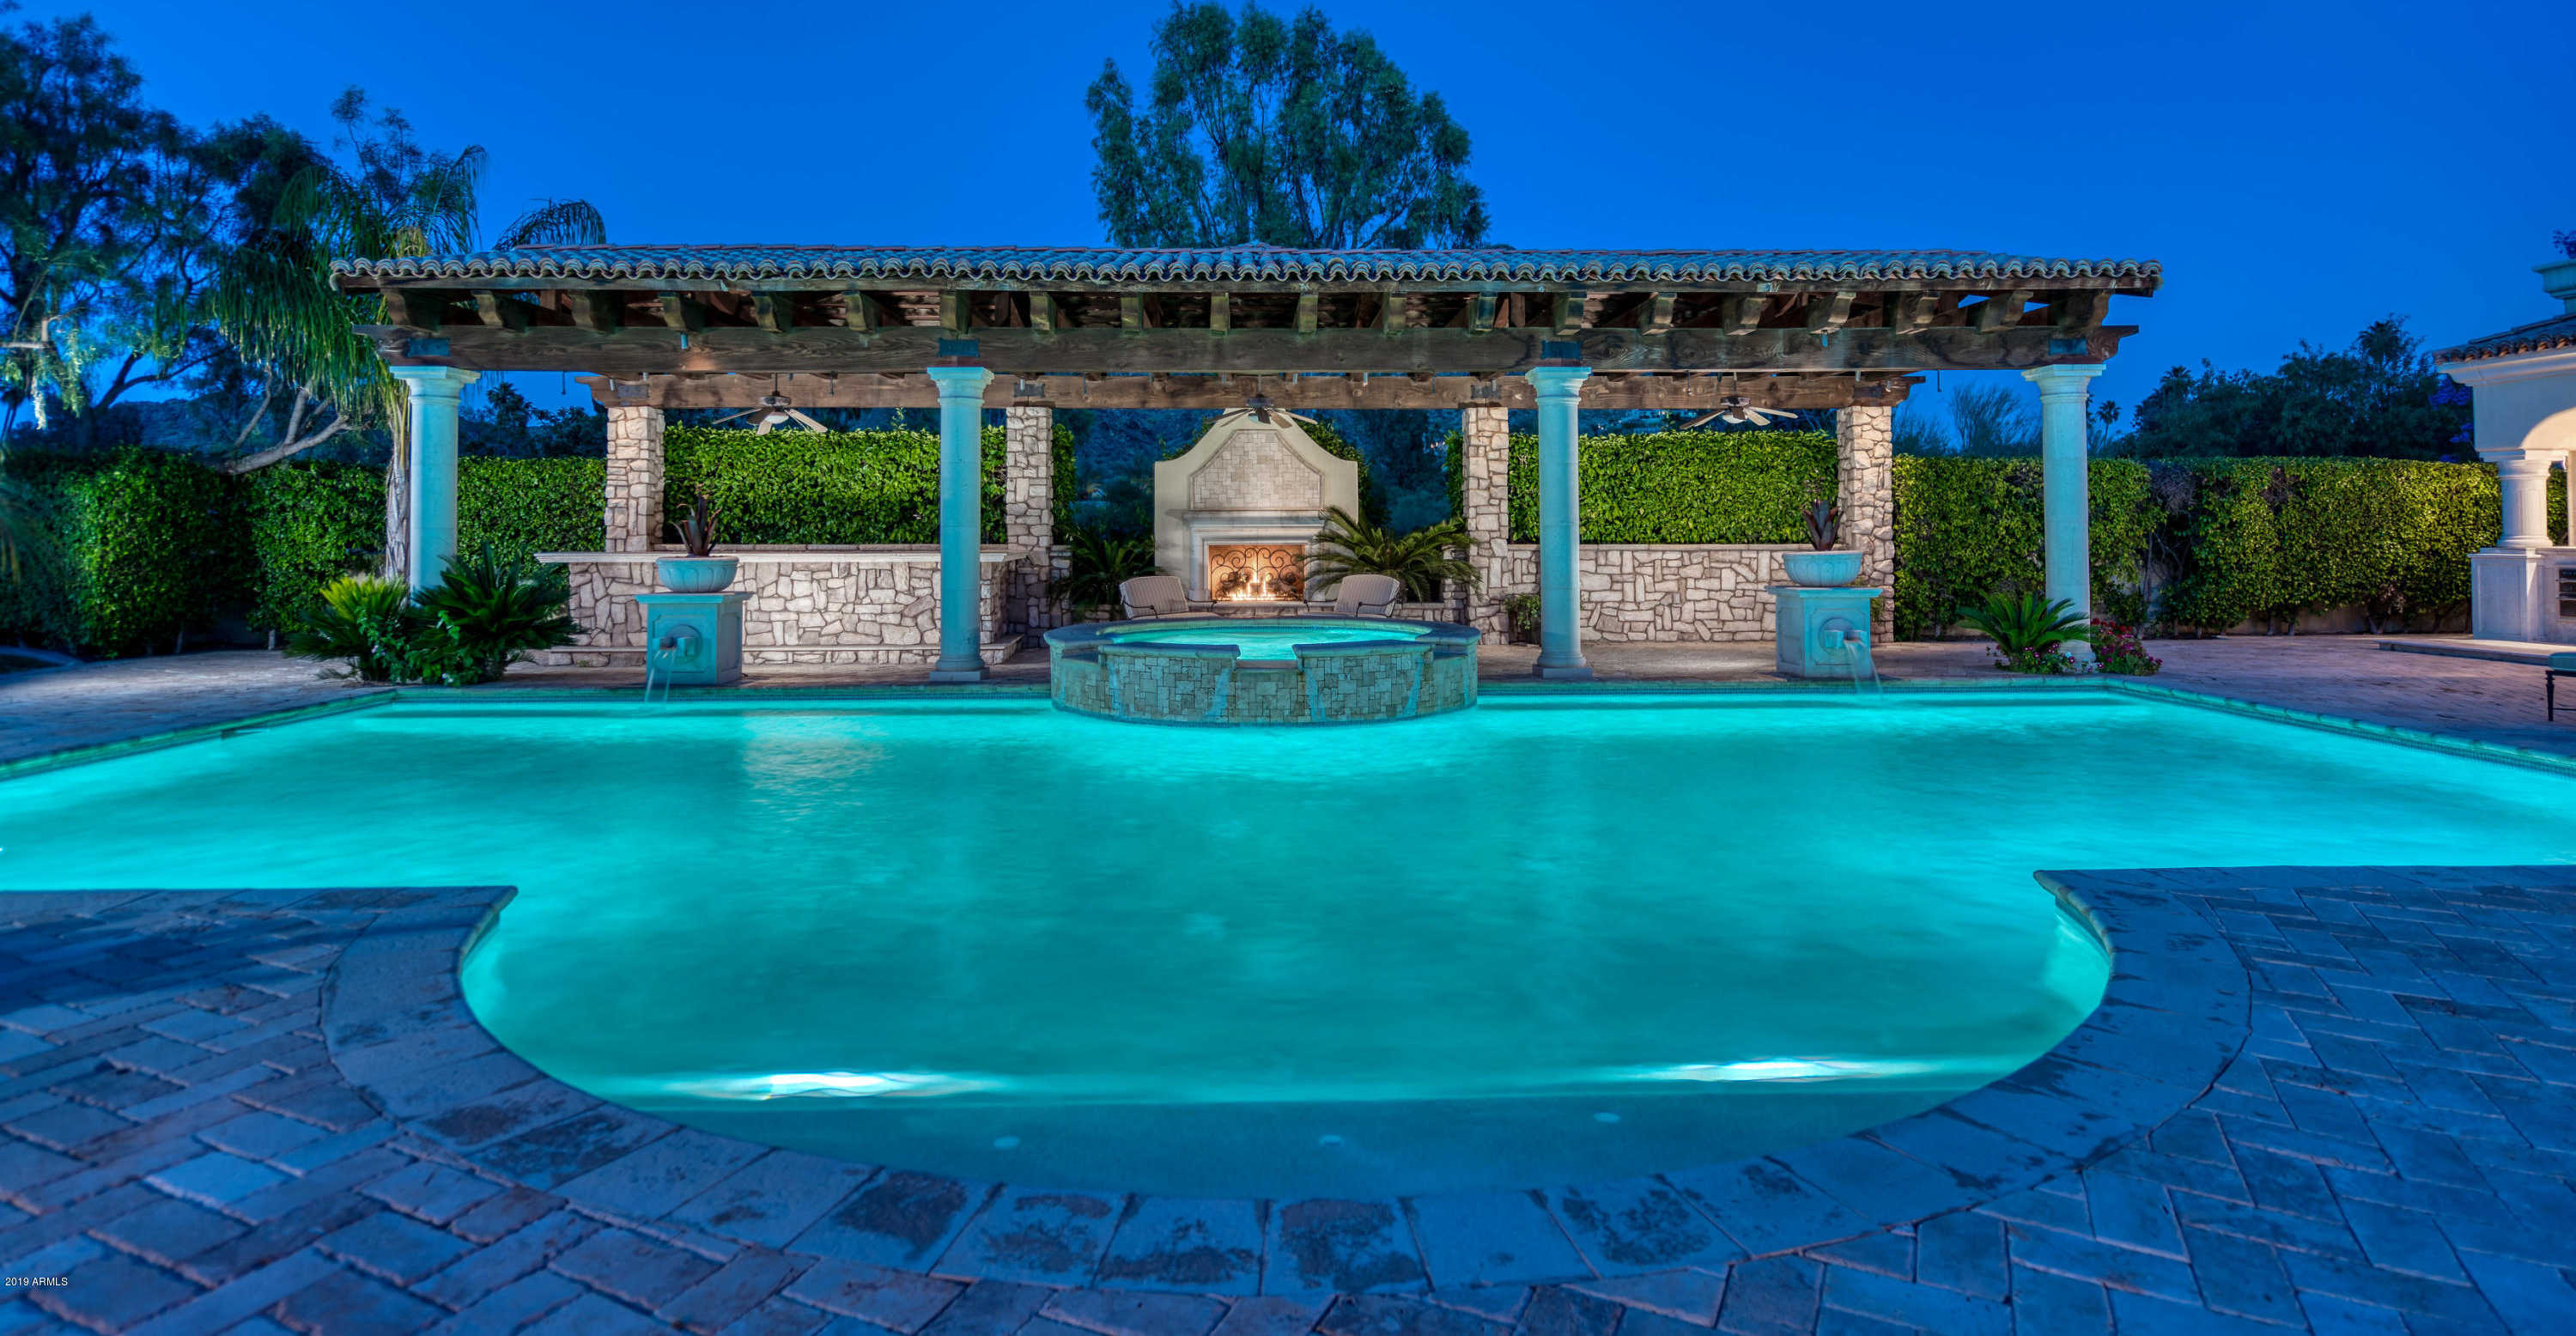 $3,300,000 - 5Br/6Ba - Home for Sale in Paradise Hills, Paradise Valley